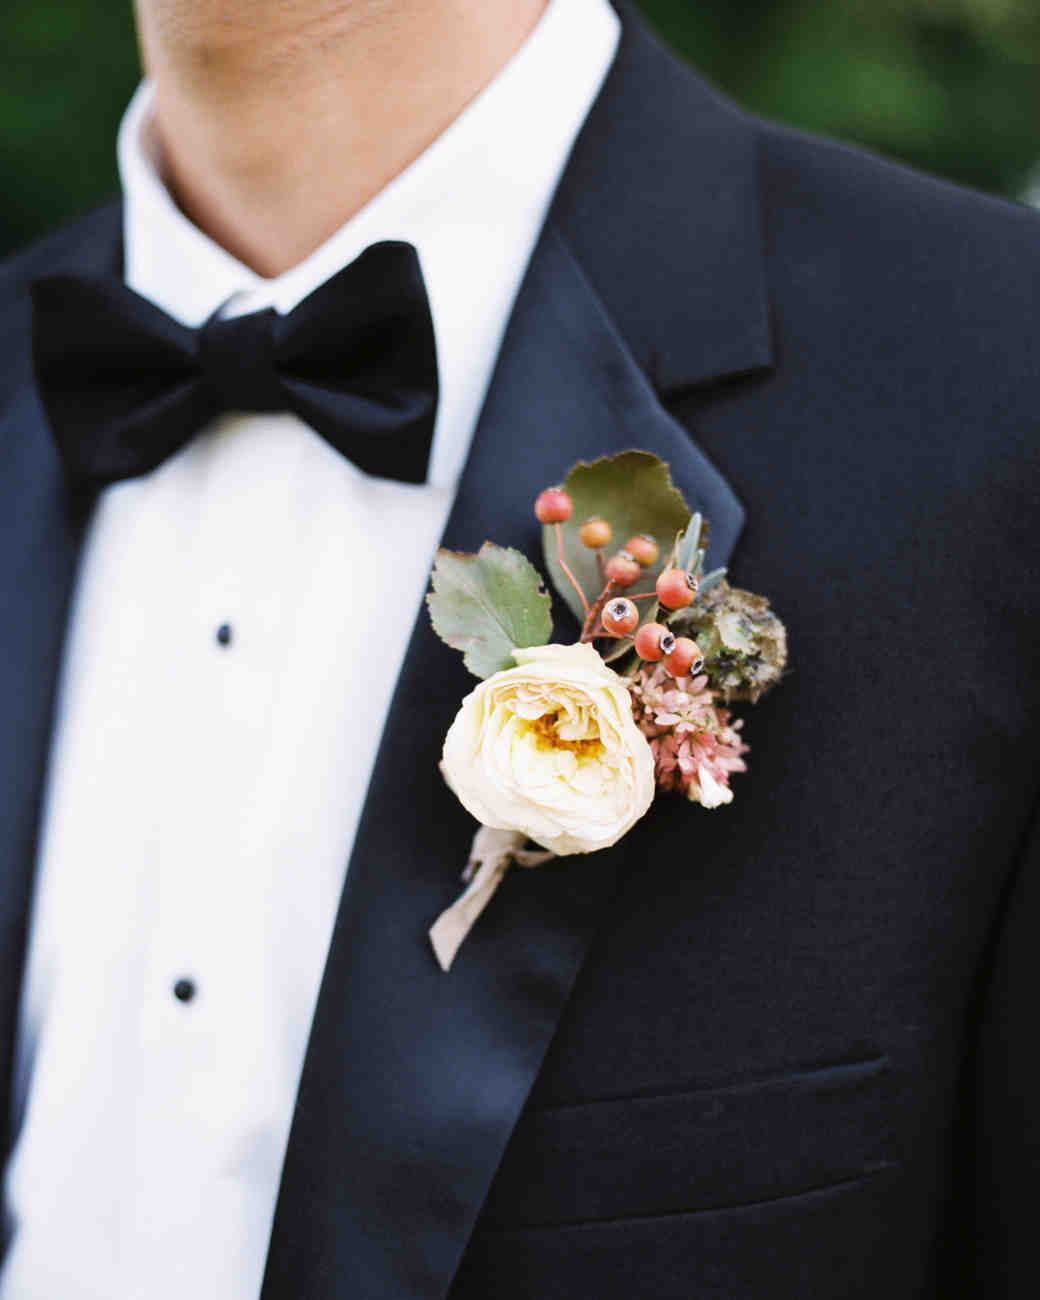 amanda william wedding tennessee boutonniere